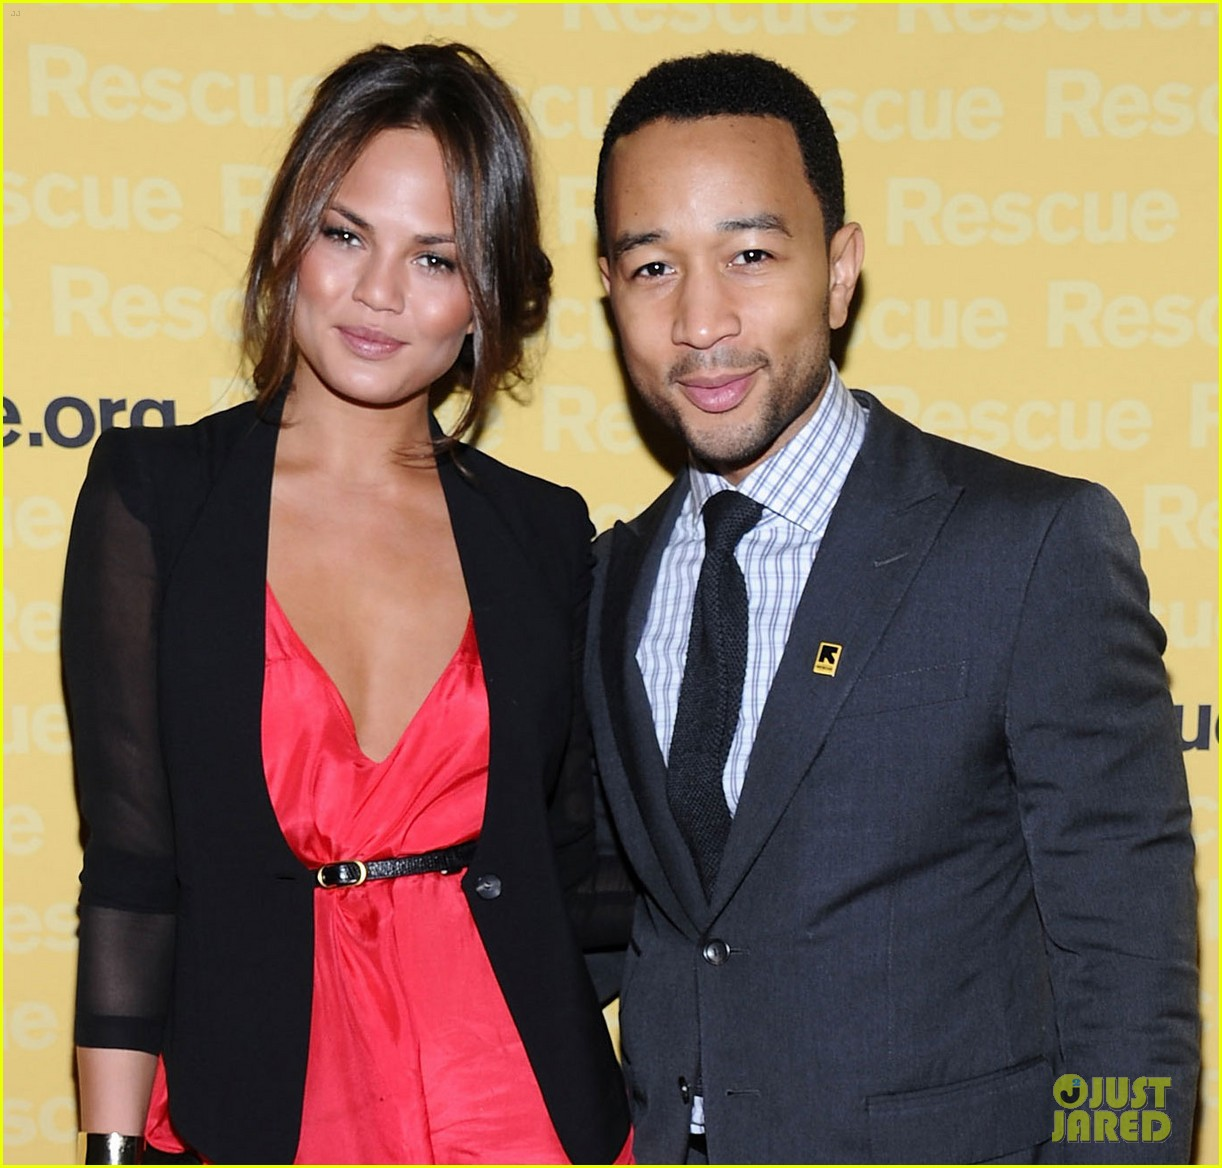 chrissy teigen john legend international rescue committee freedom award 08